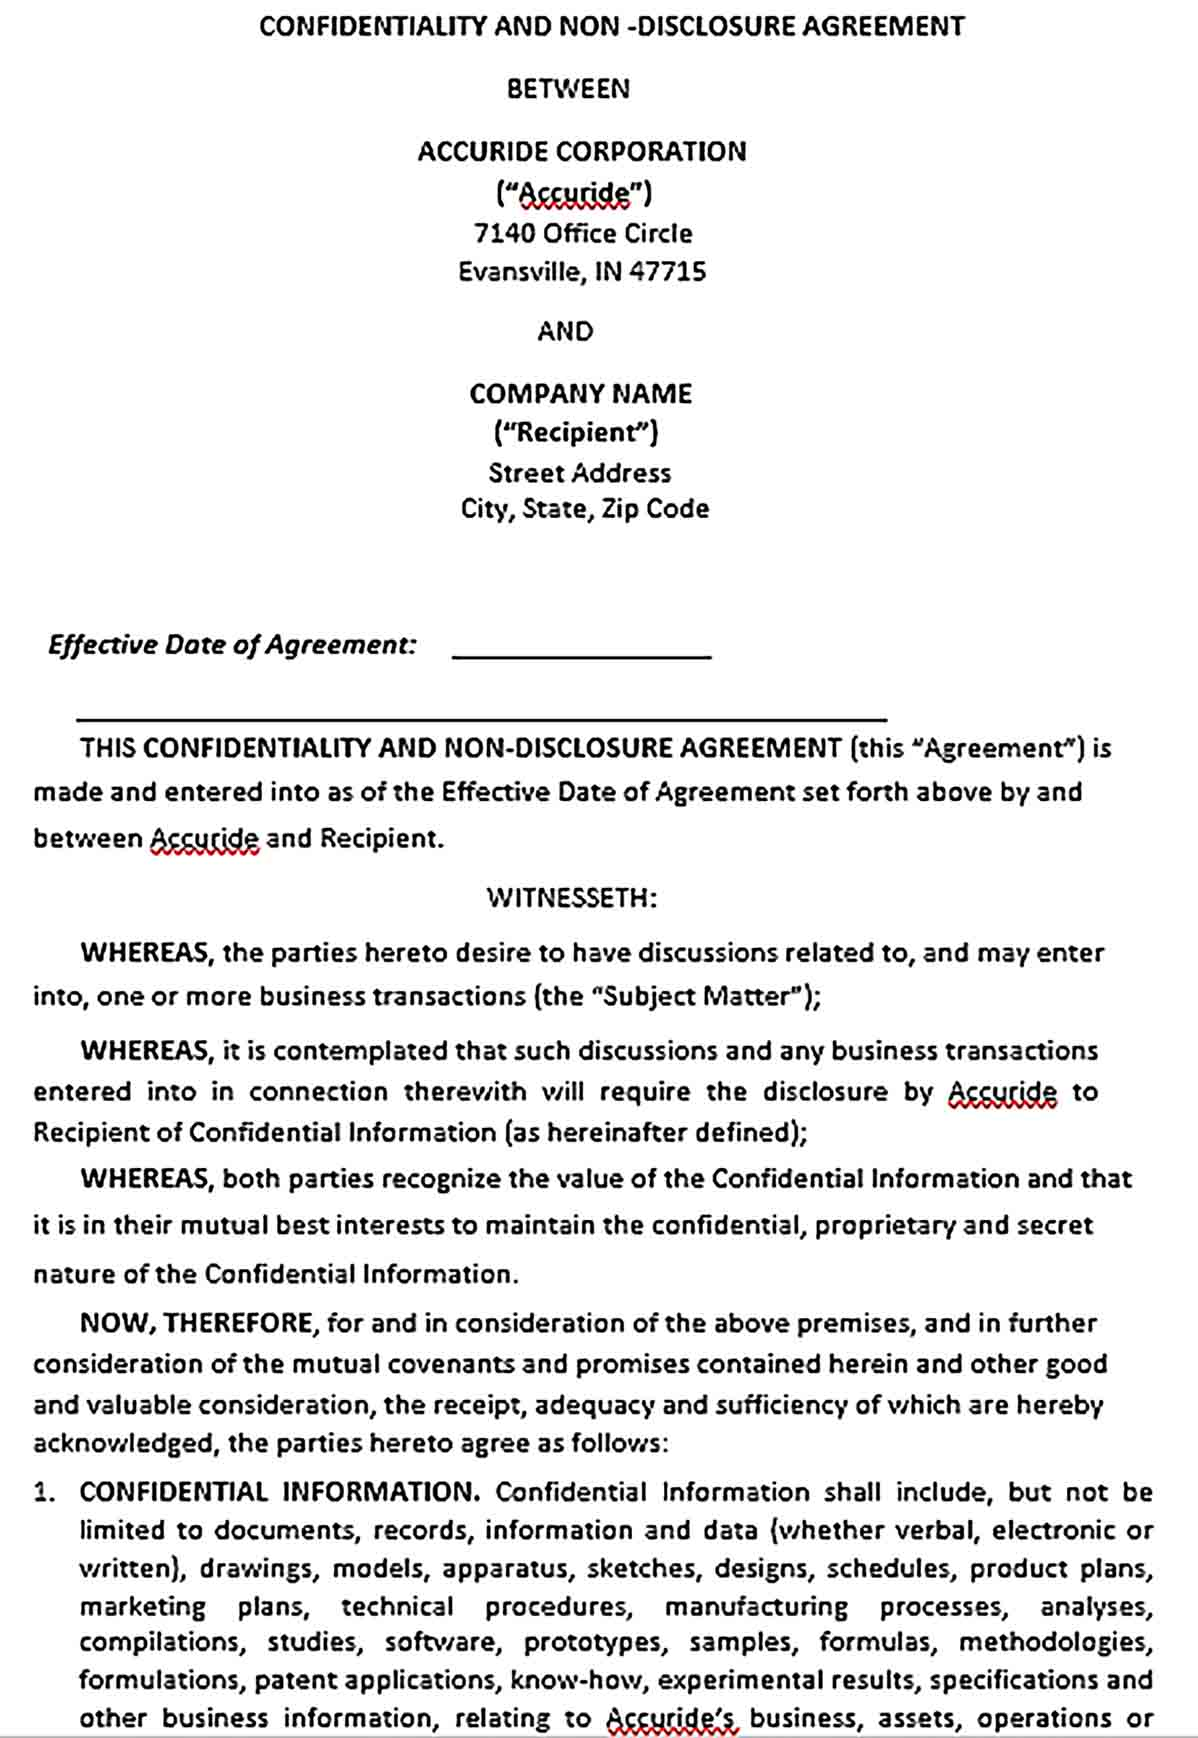 Sample Non Disclosure Confidentiality Agreement Form